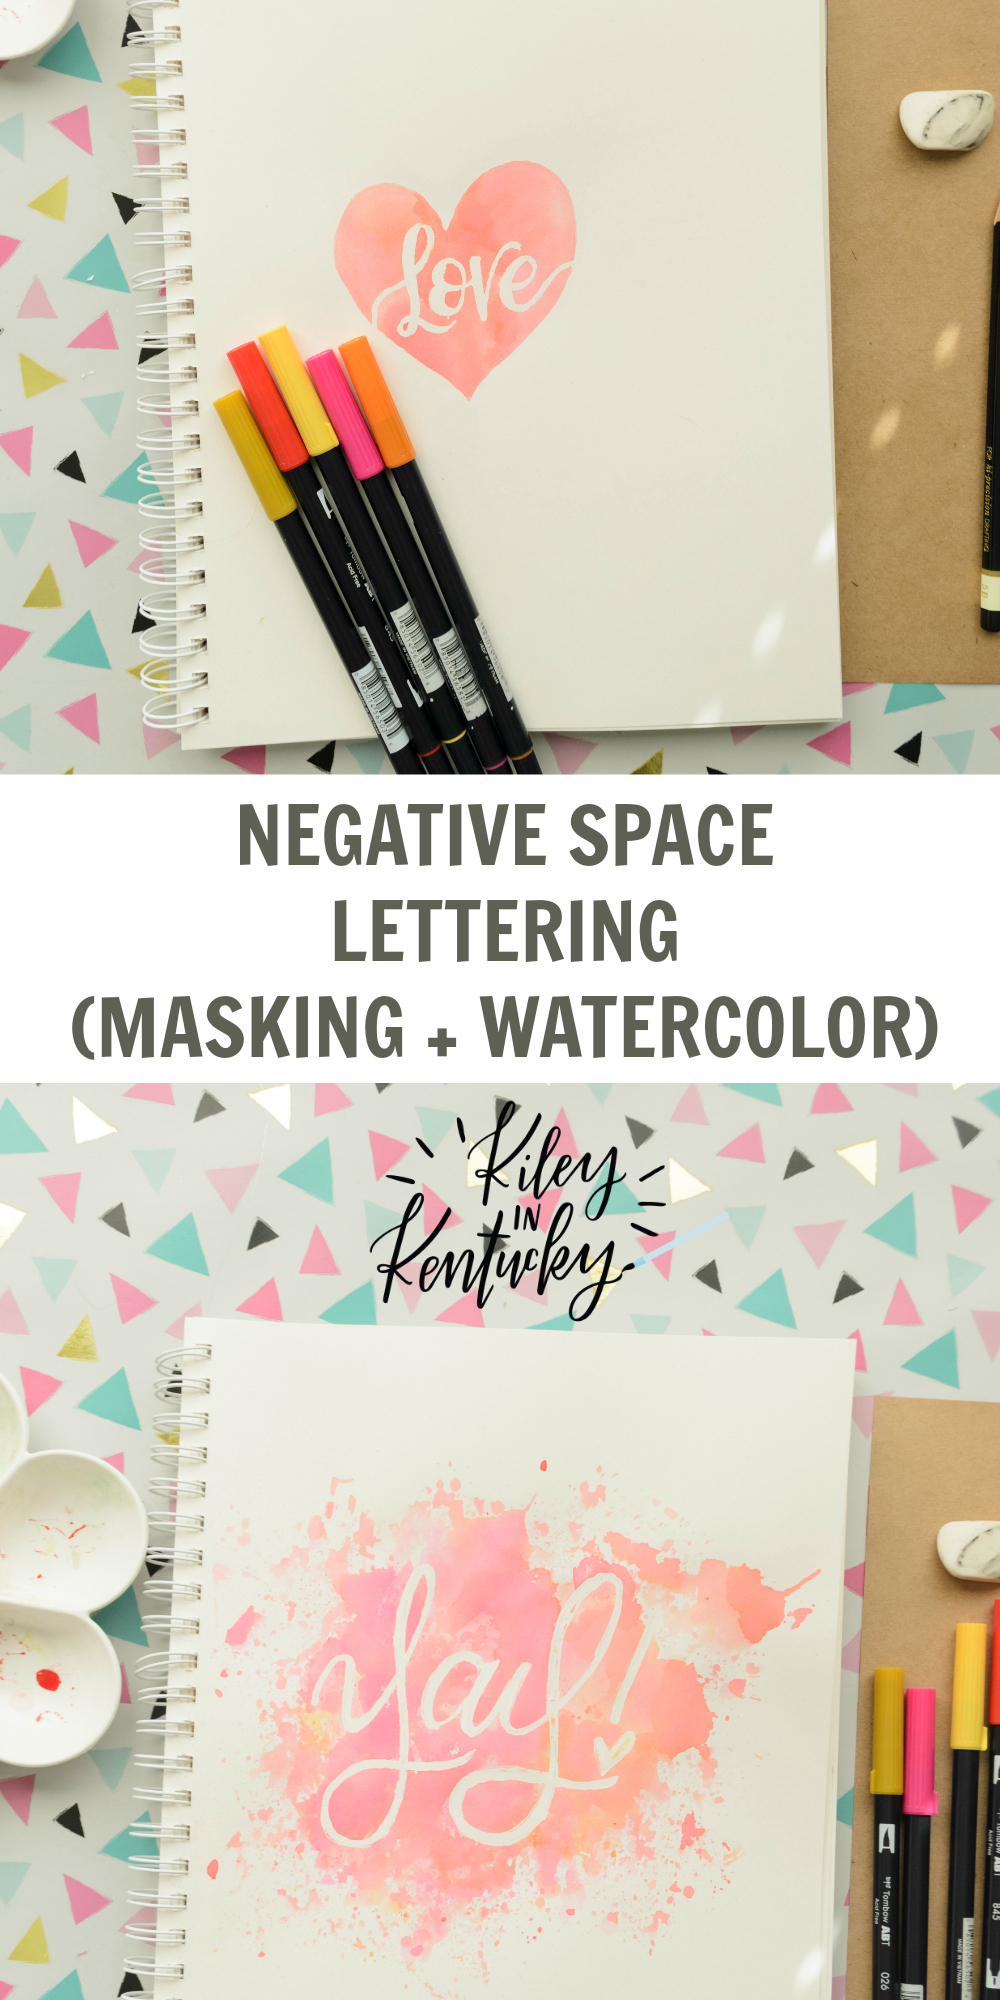 WOO HOO Were Back Again With Another Negative Space Lettering Tutorial This One Isnt Focused So Much On But I Think Youll Like It Just The